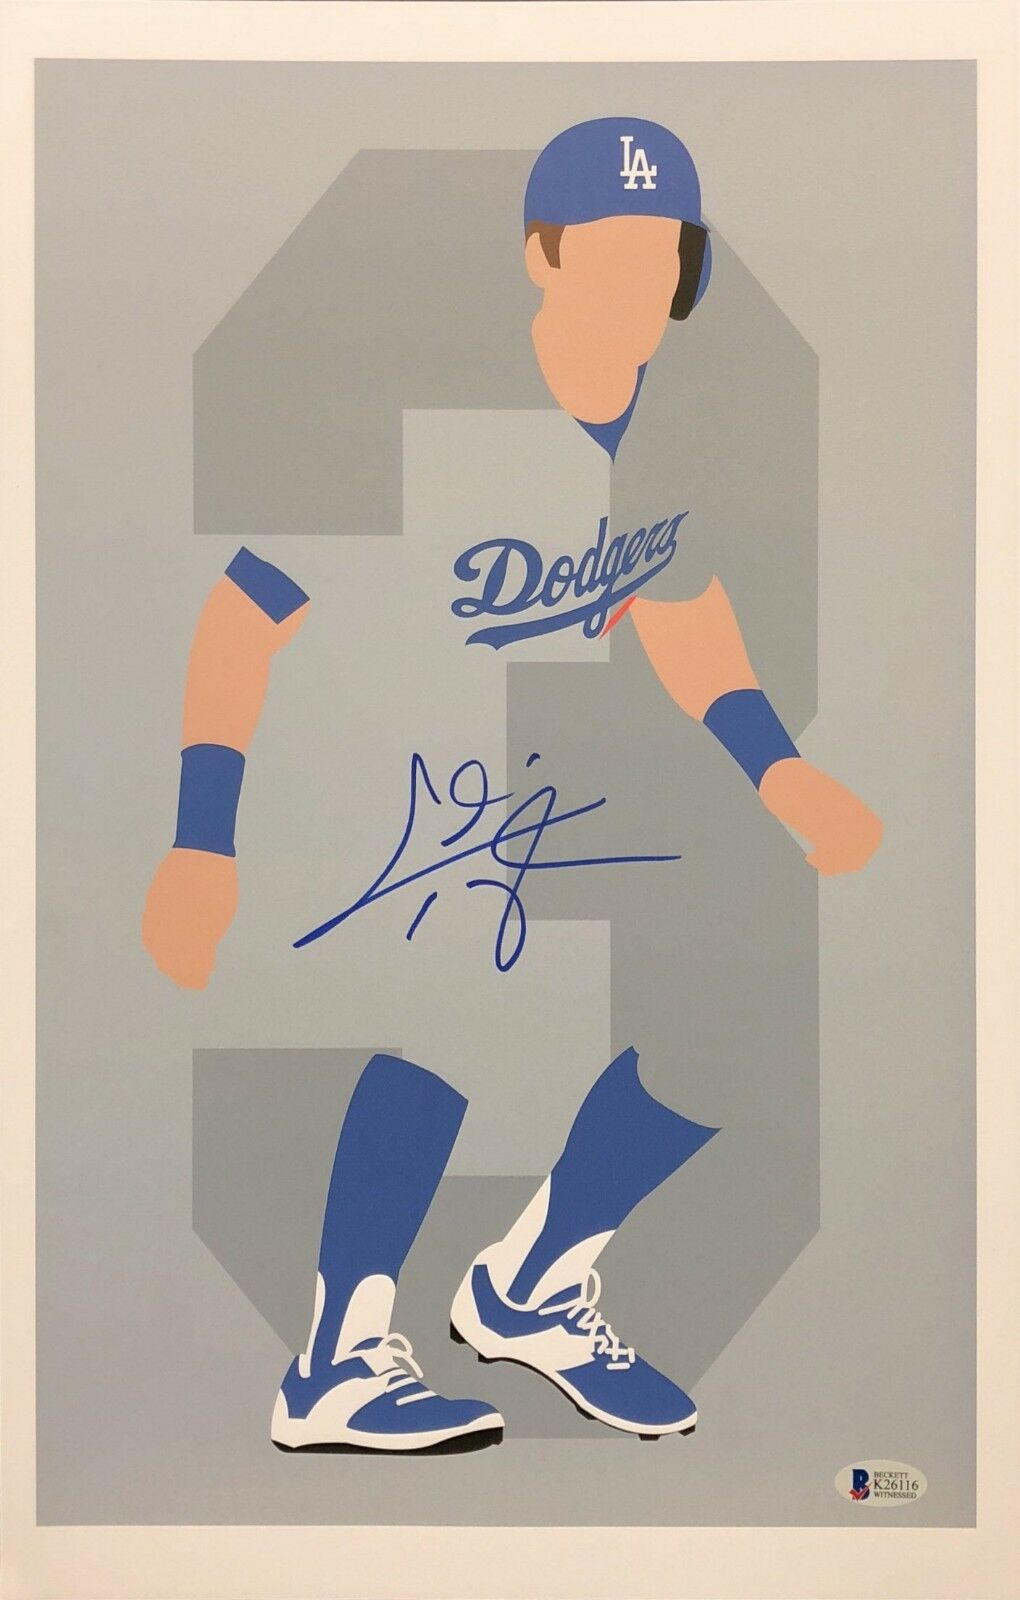 Chris Taylor Signed Los Angeles Dodgers Baseball 11x17 Print BAS Beckett K26116